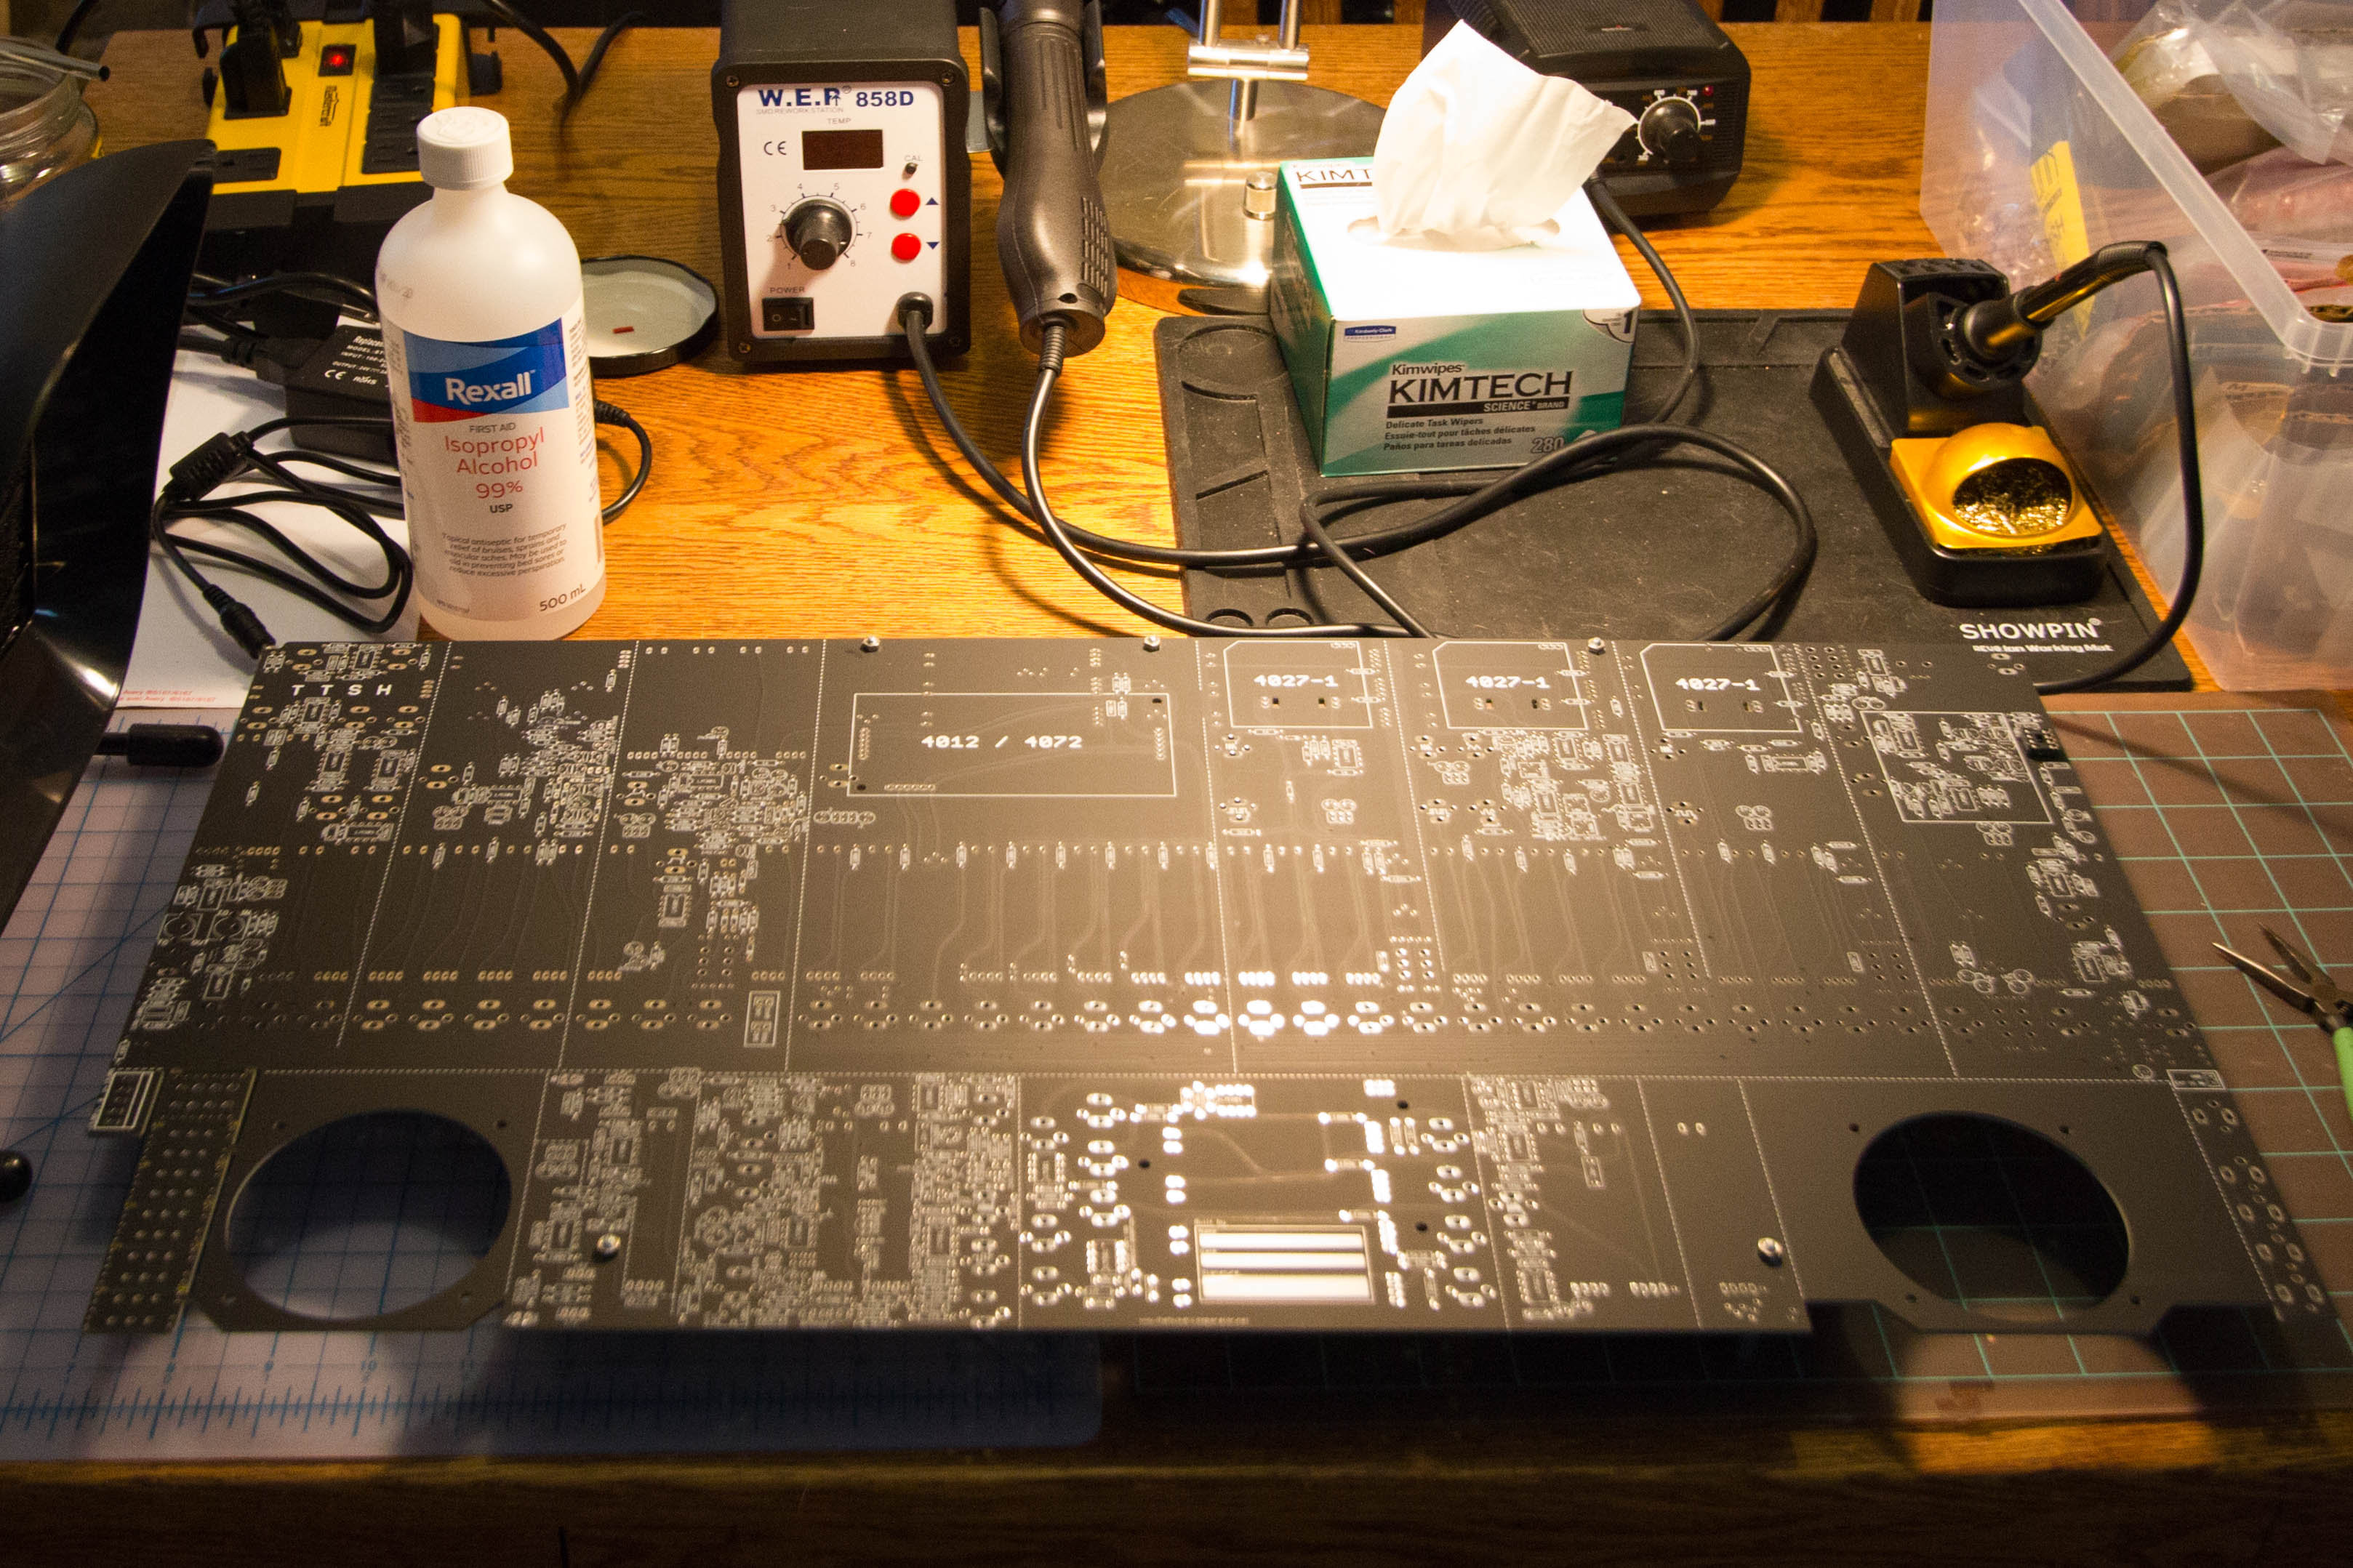 TTSH Mainboard ready for stuffing